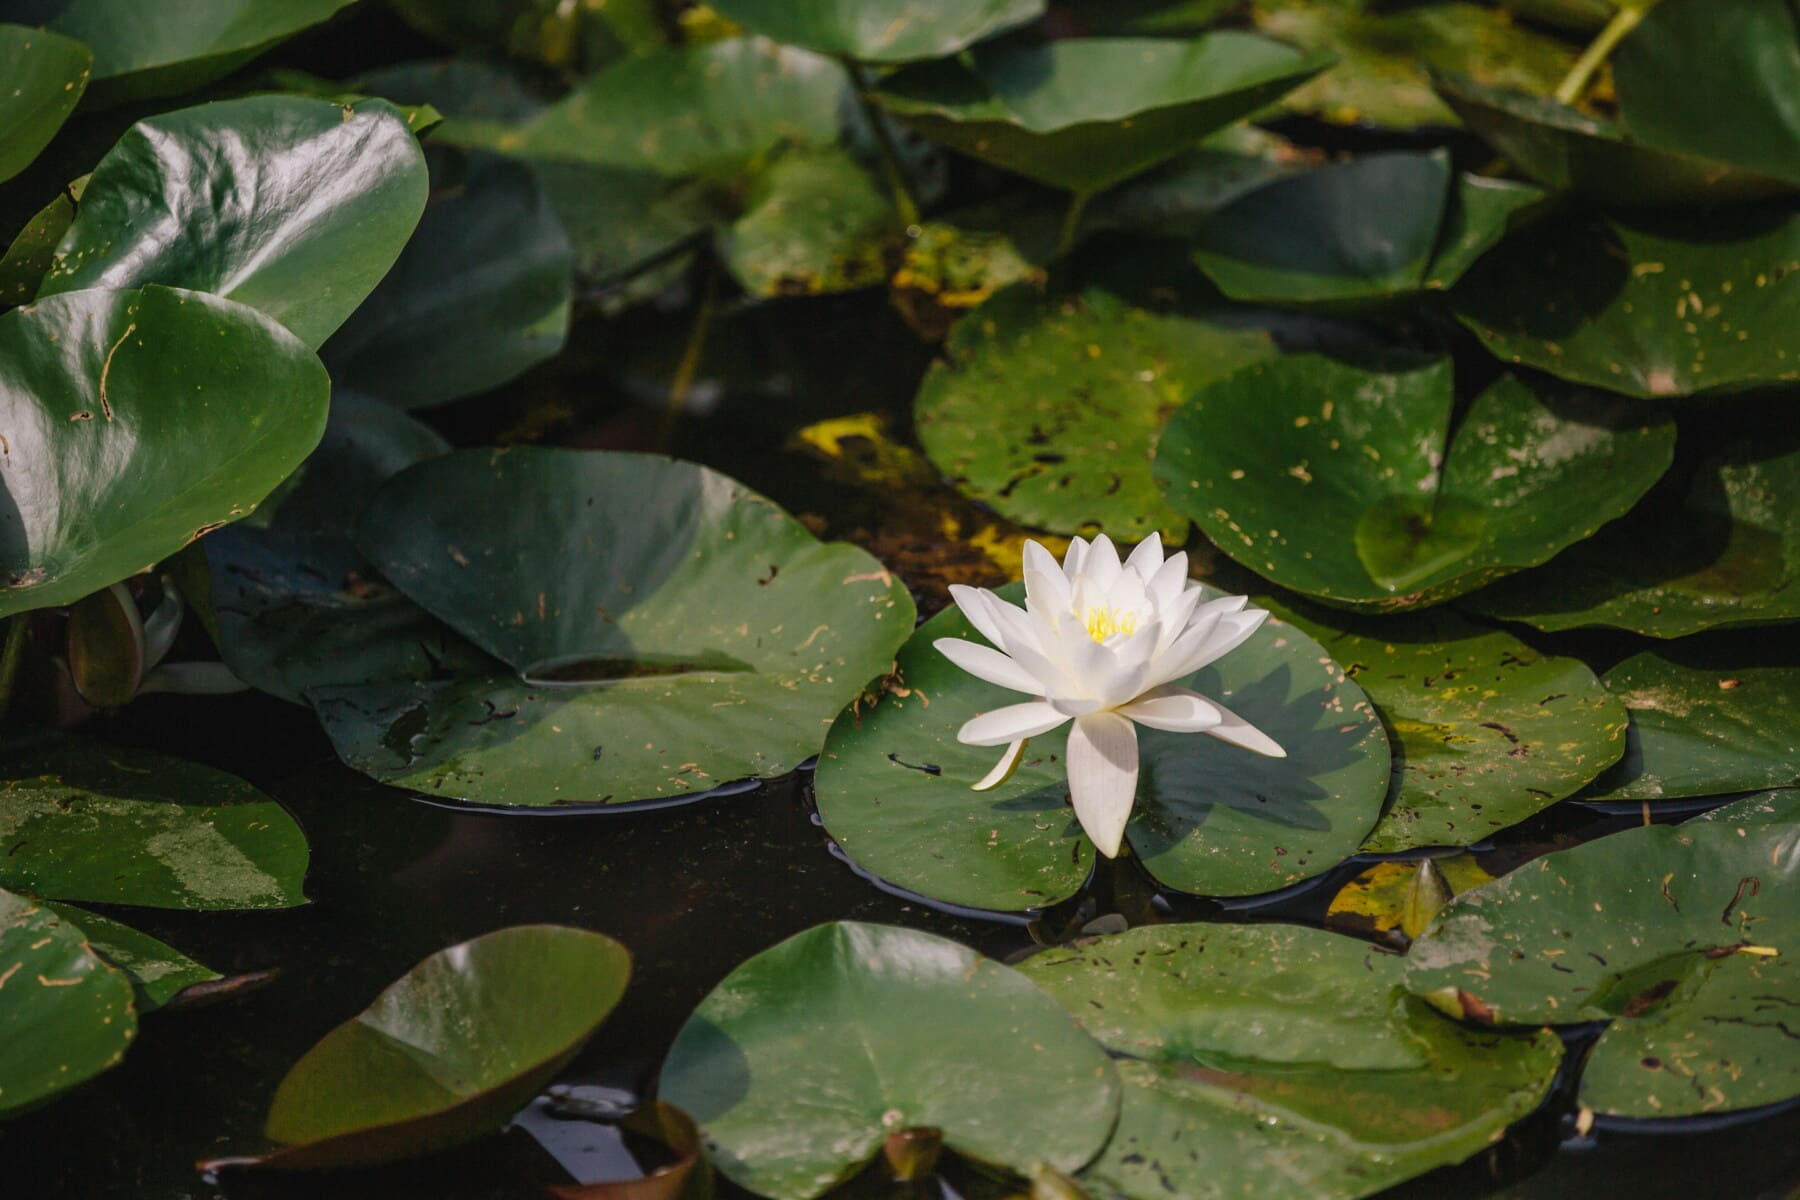 lotus, white flower, water lily, garden, nature, flower, pool, leaf, blossom, plant